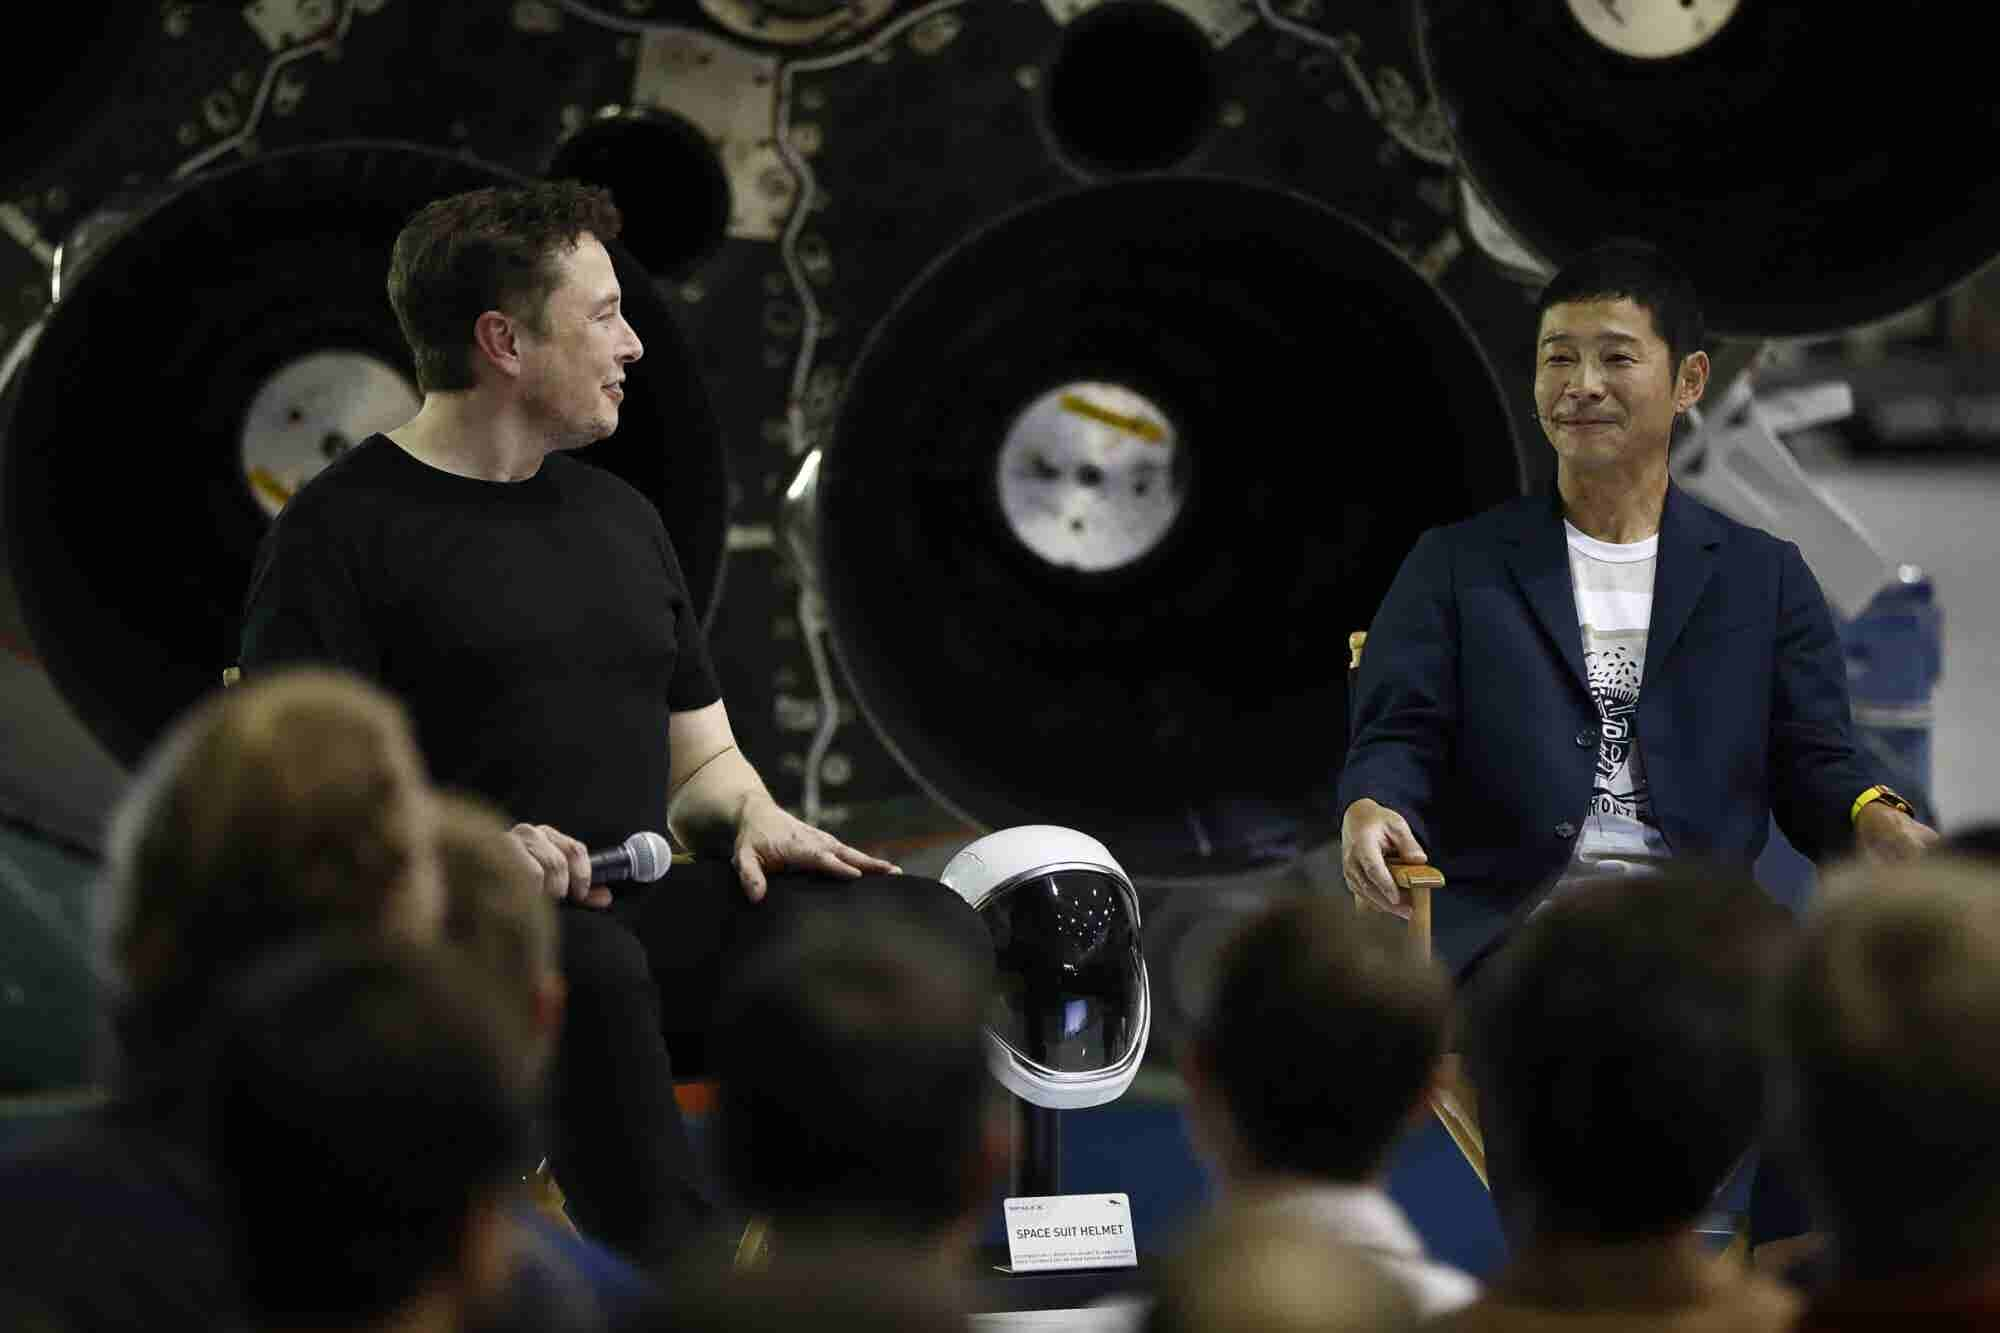 What You Need to Know About the Japanese Billionaire Going to Space With SpaceX